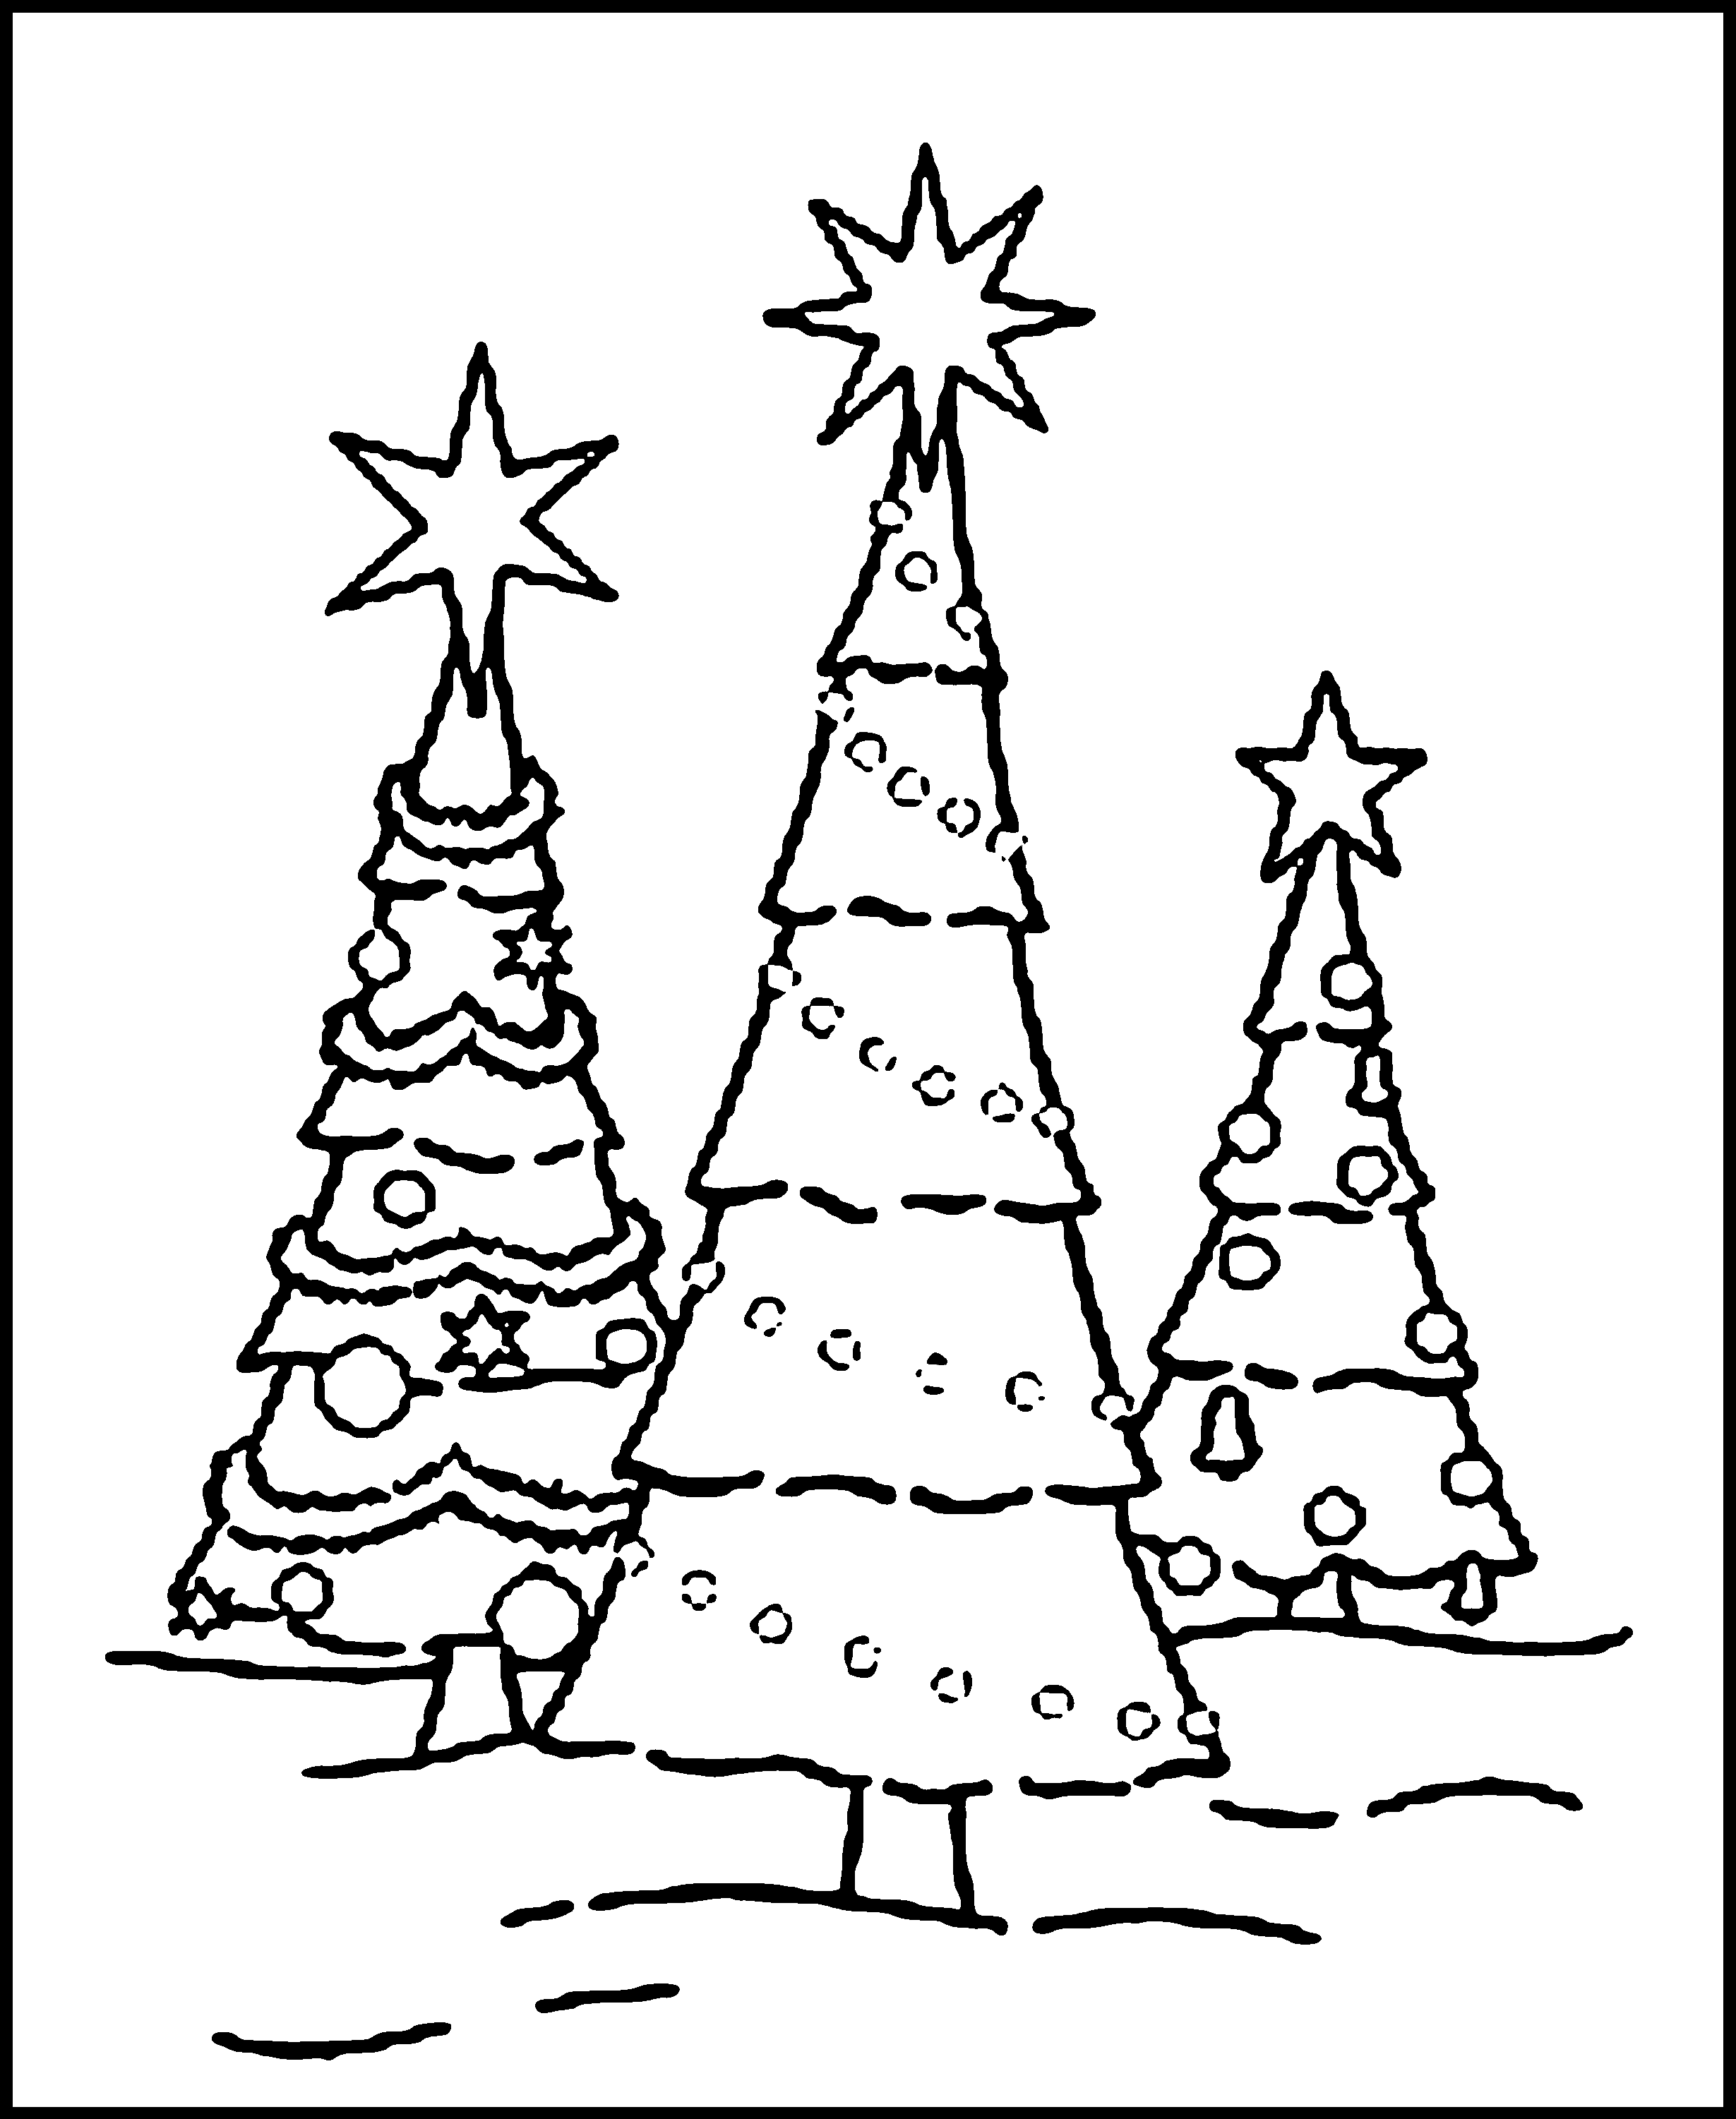 christmas tree coloring pages christmas 2019 40 free printable christmas tree coloring pages christmas coloring tree